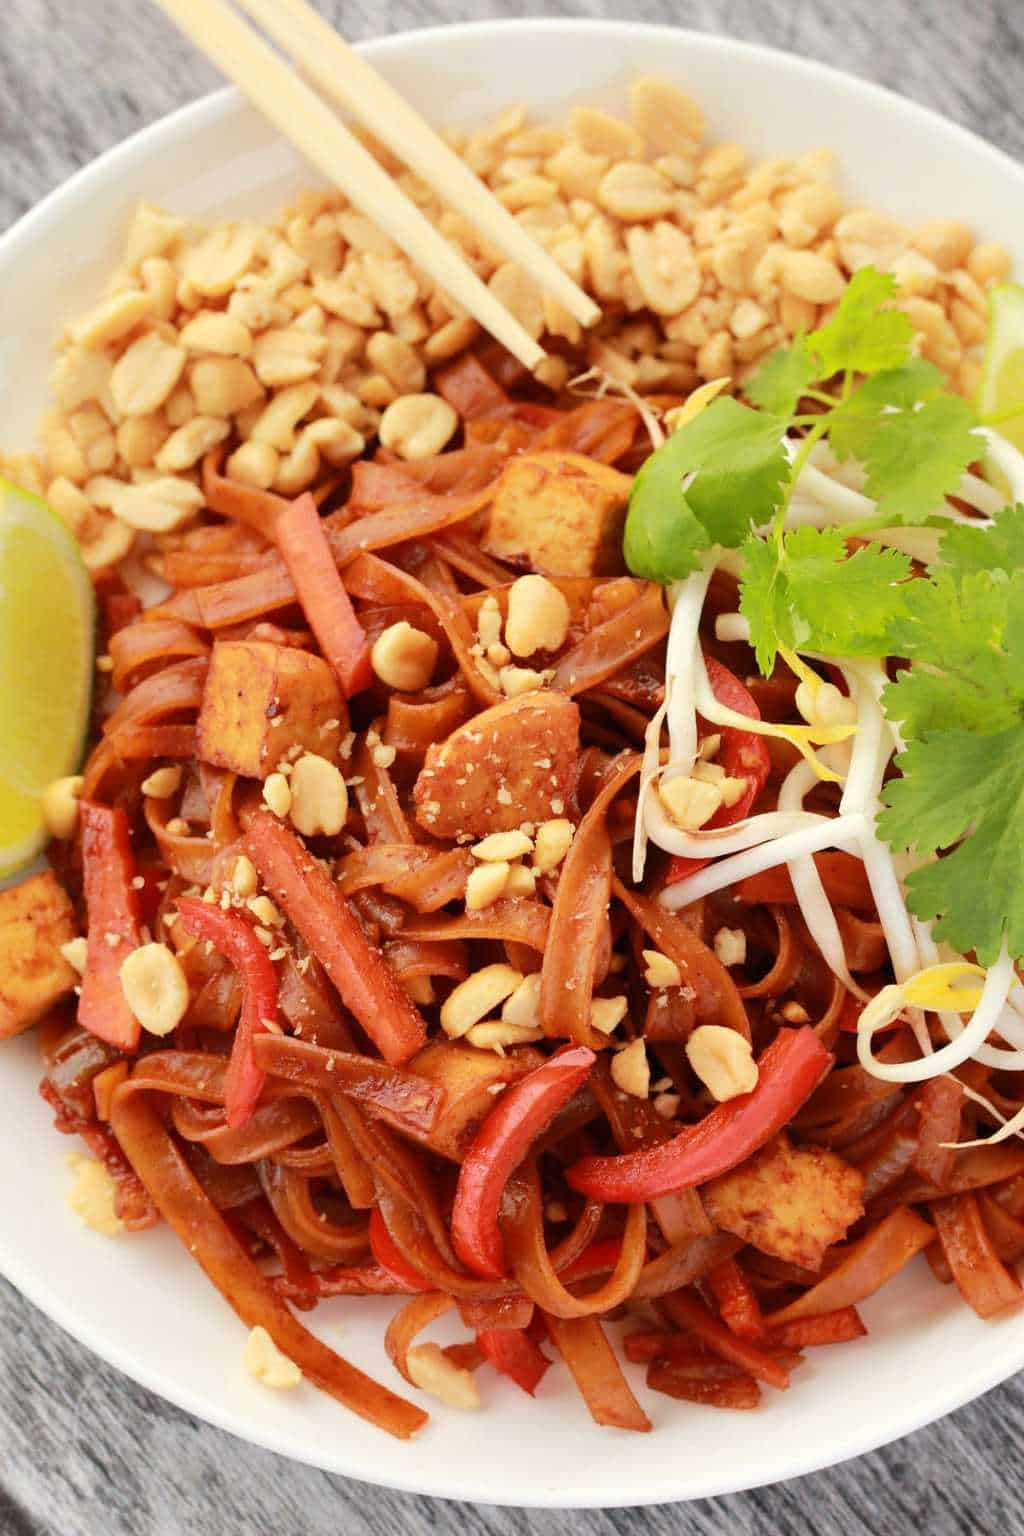 Vegan pad thai topped with crushed peanuts, fresh cilantro and bean sprouts.